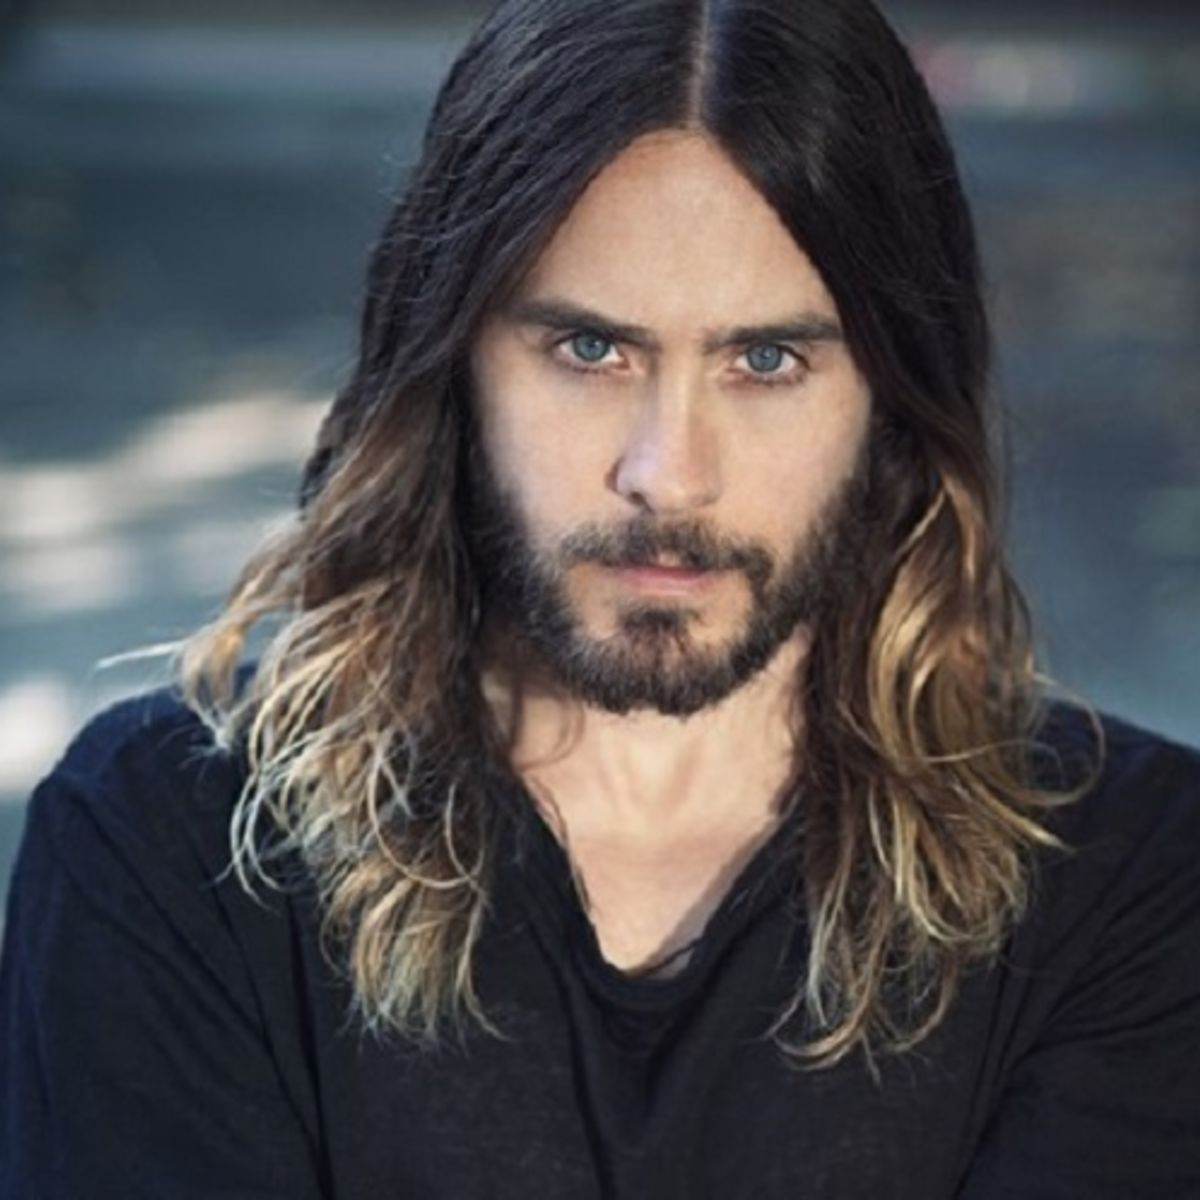 jared-leto-cover-photo.jpg